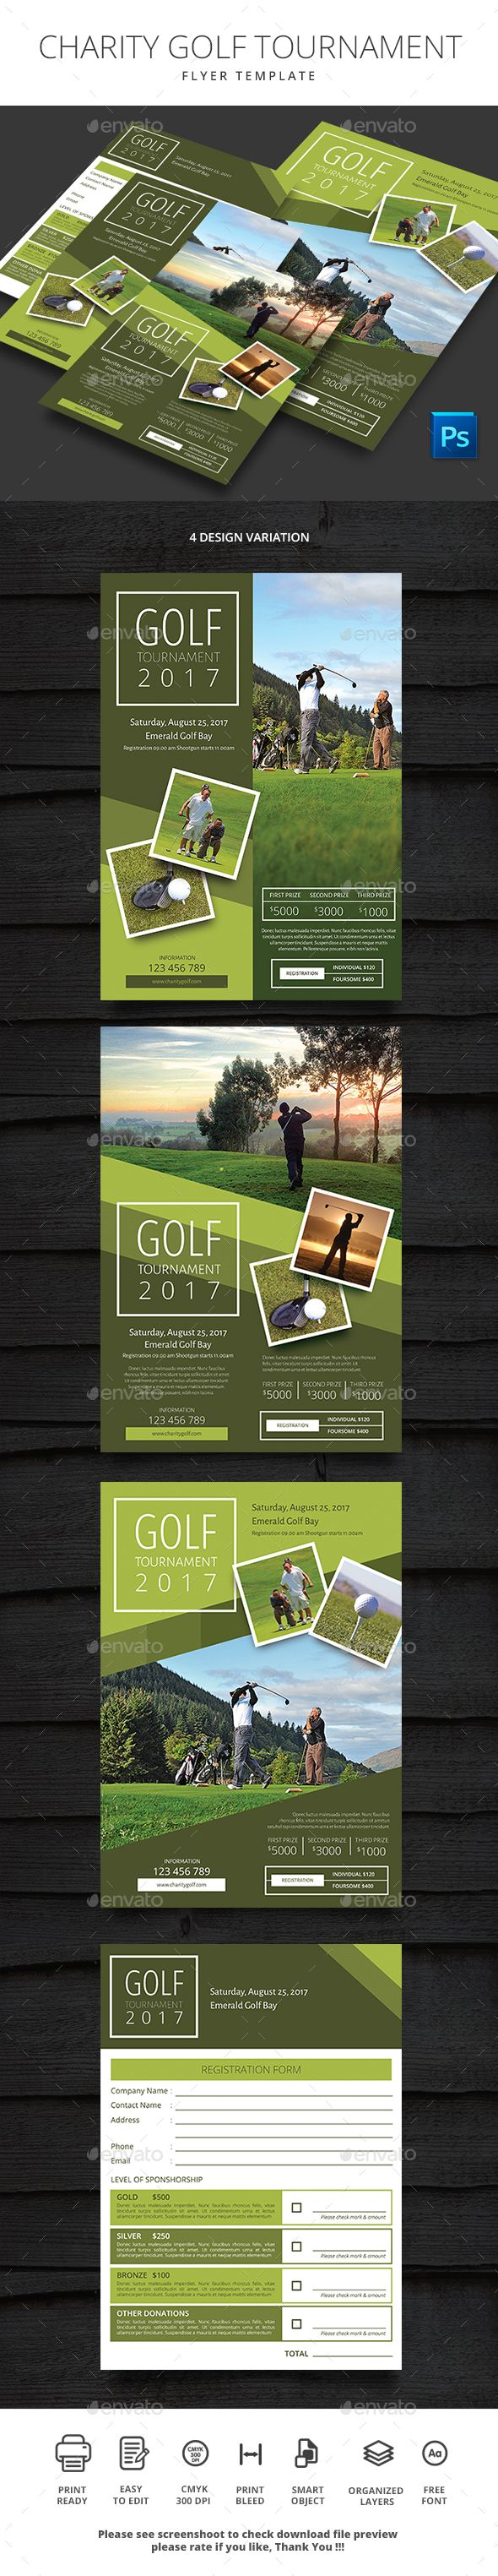 Charity Golf Tournament  Flyer Design Templates Golf And Template